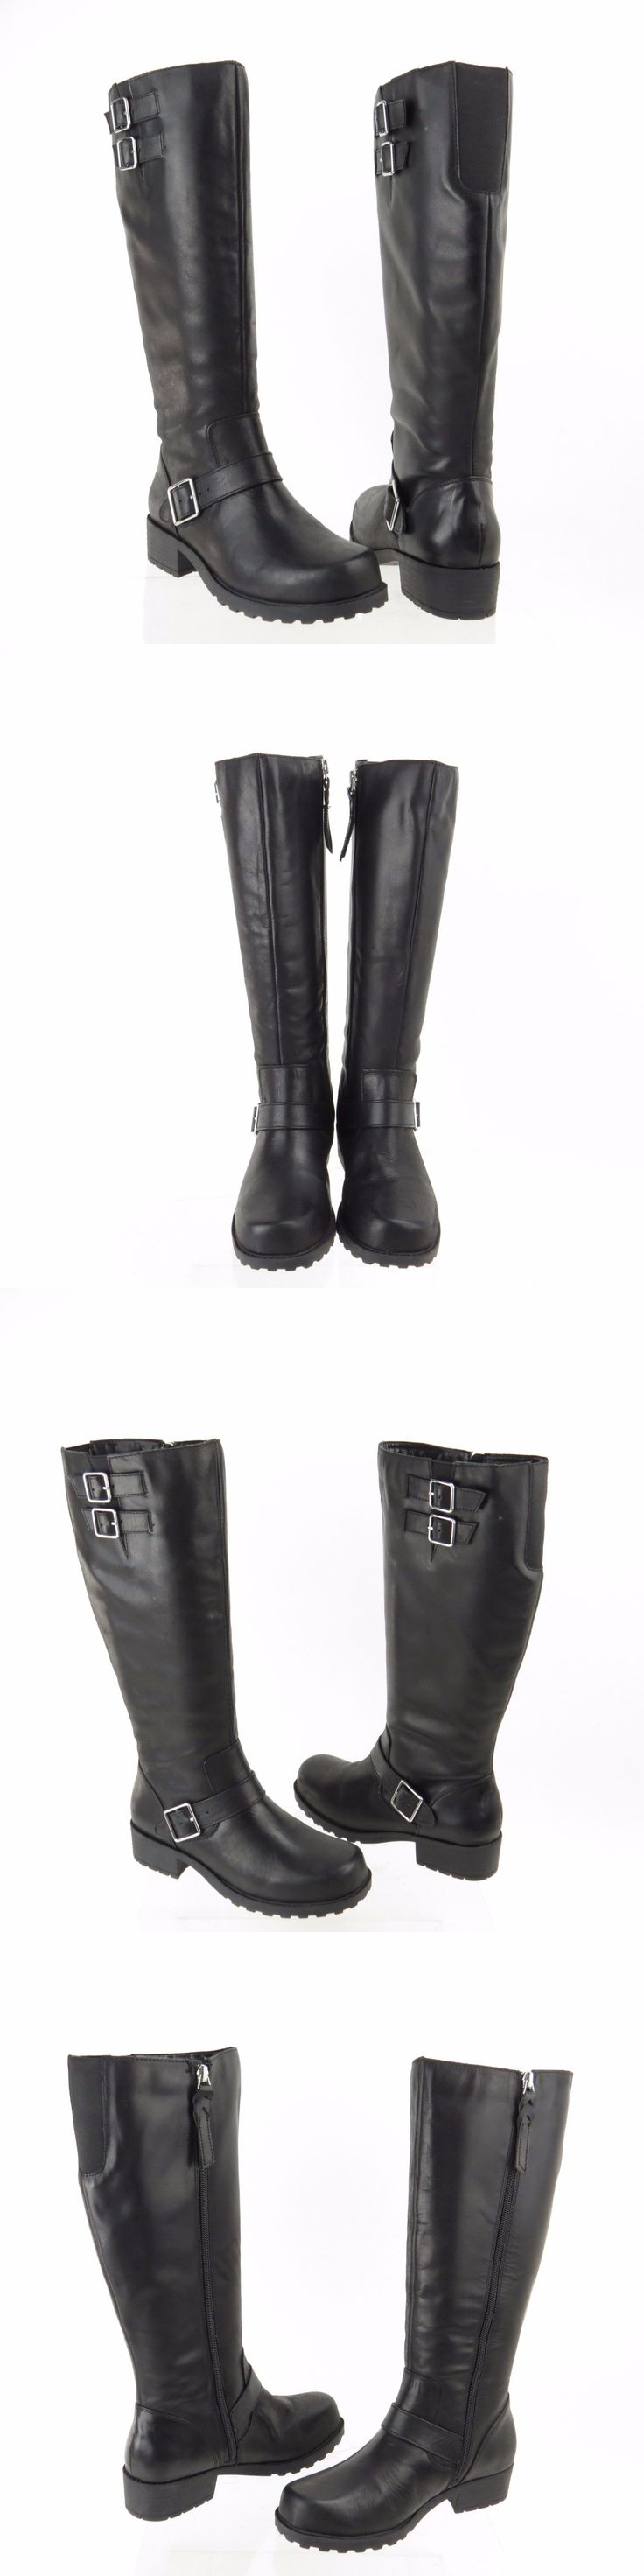 Women Shoes: Womens Softwalk Bellrider Shoes Black Leather Motorcycle Boots Size 5.5 M New! BUY IT NOW ONLY: $53.99